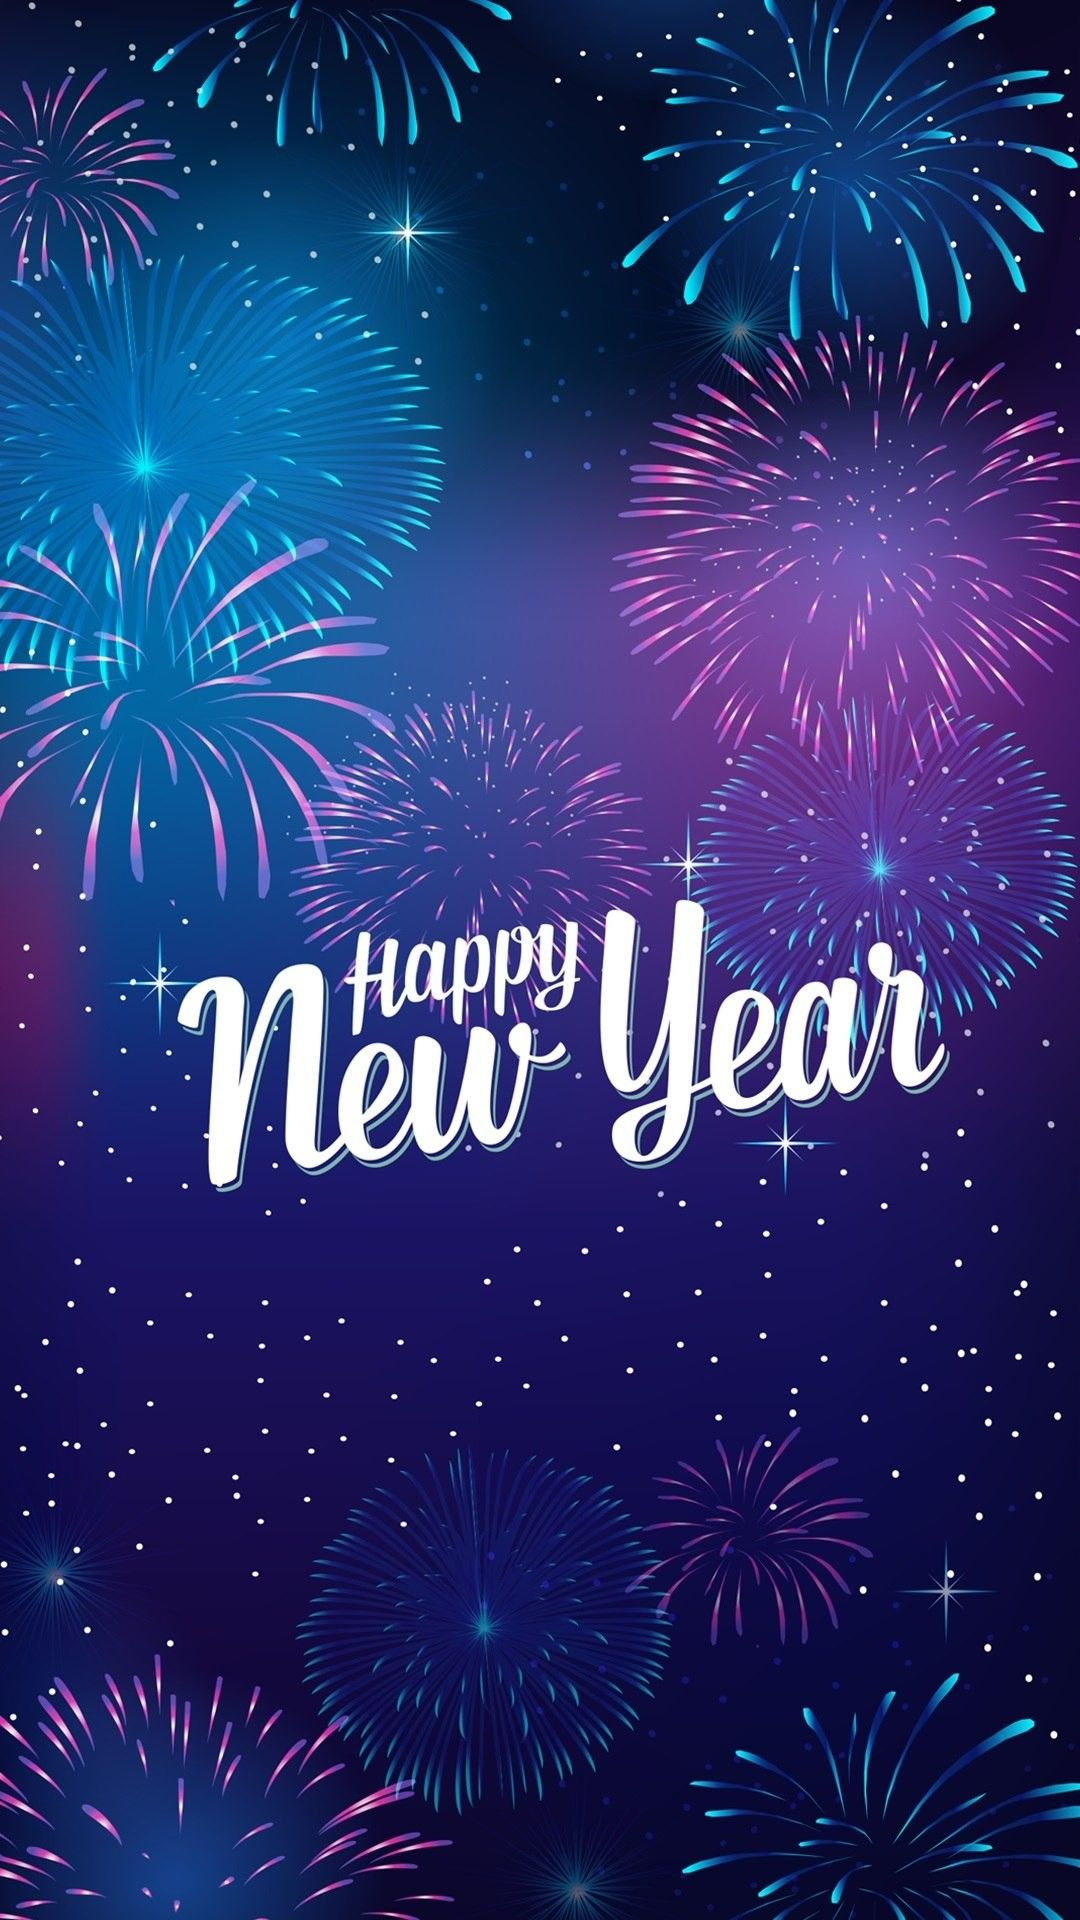 Iphone New Year Happy New Year Wallpaper New Year S Eve Wallpaper New Year S Eve Background